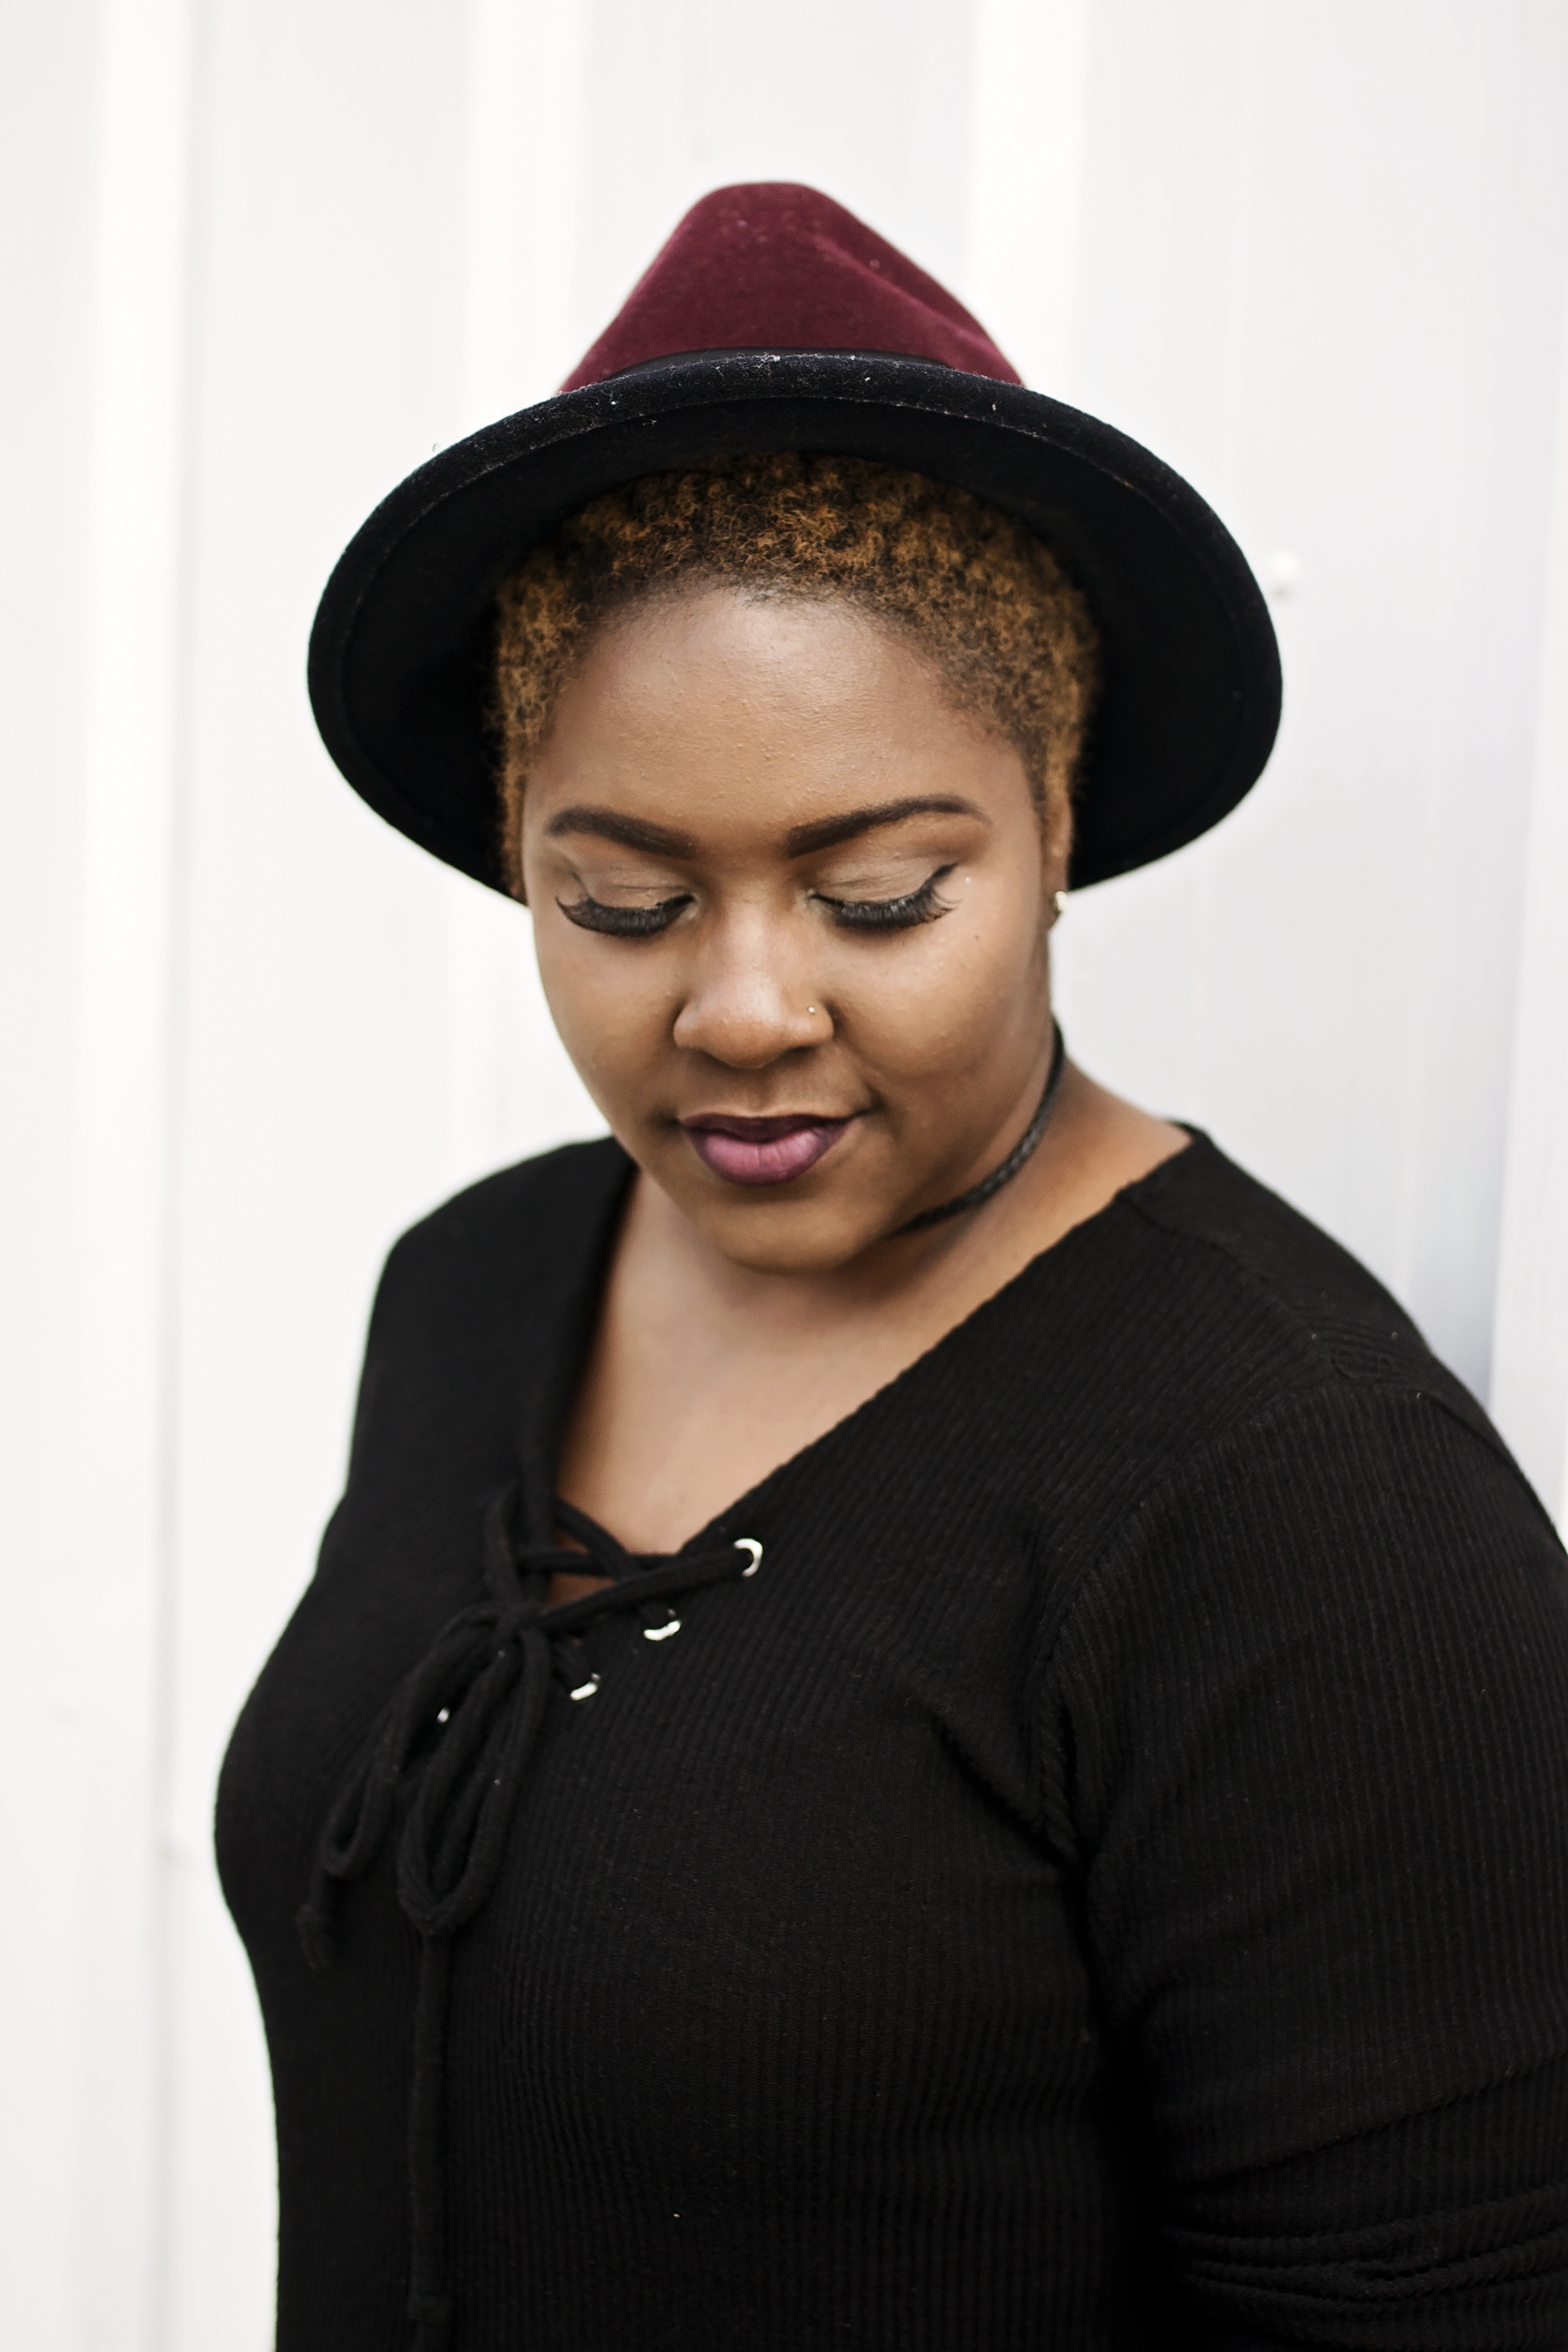 Black Girl Magic | I finally stepped out of my comfort zone and did a shoot with fellow blogger, Demi. This shoot had me feeling fearless and above all inspired to do more.